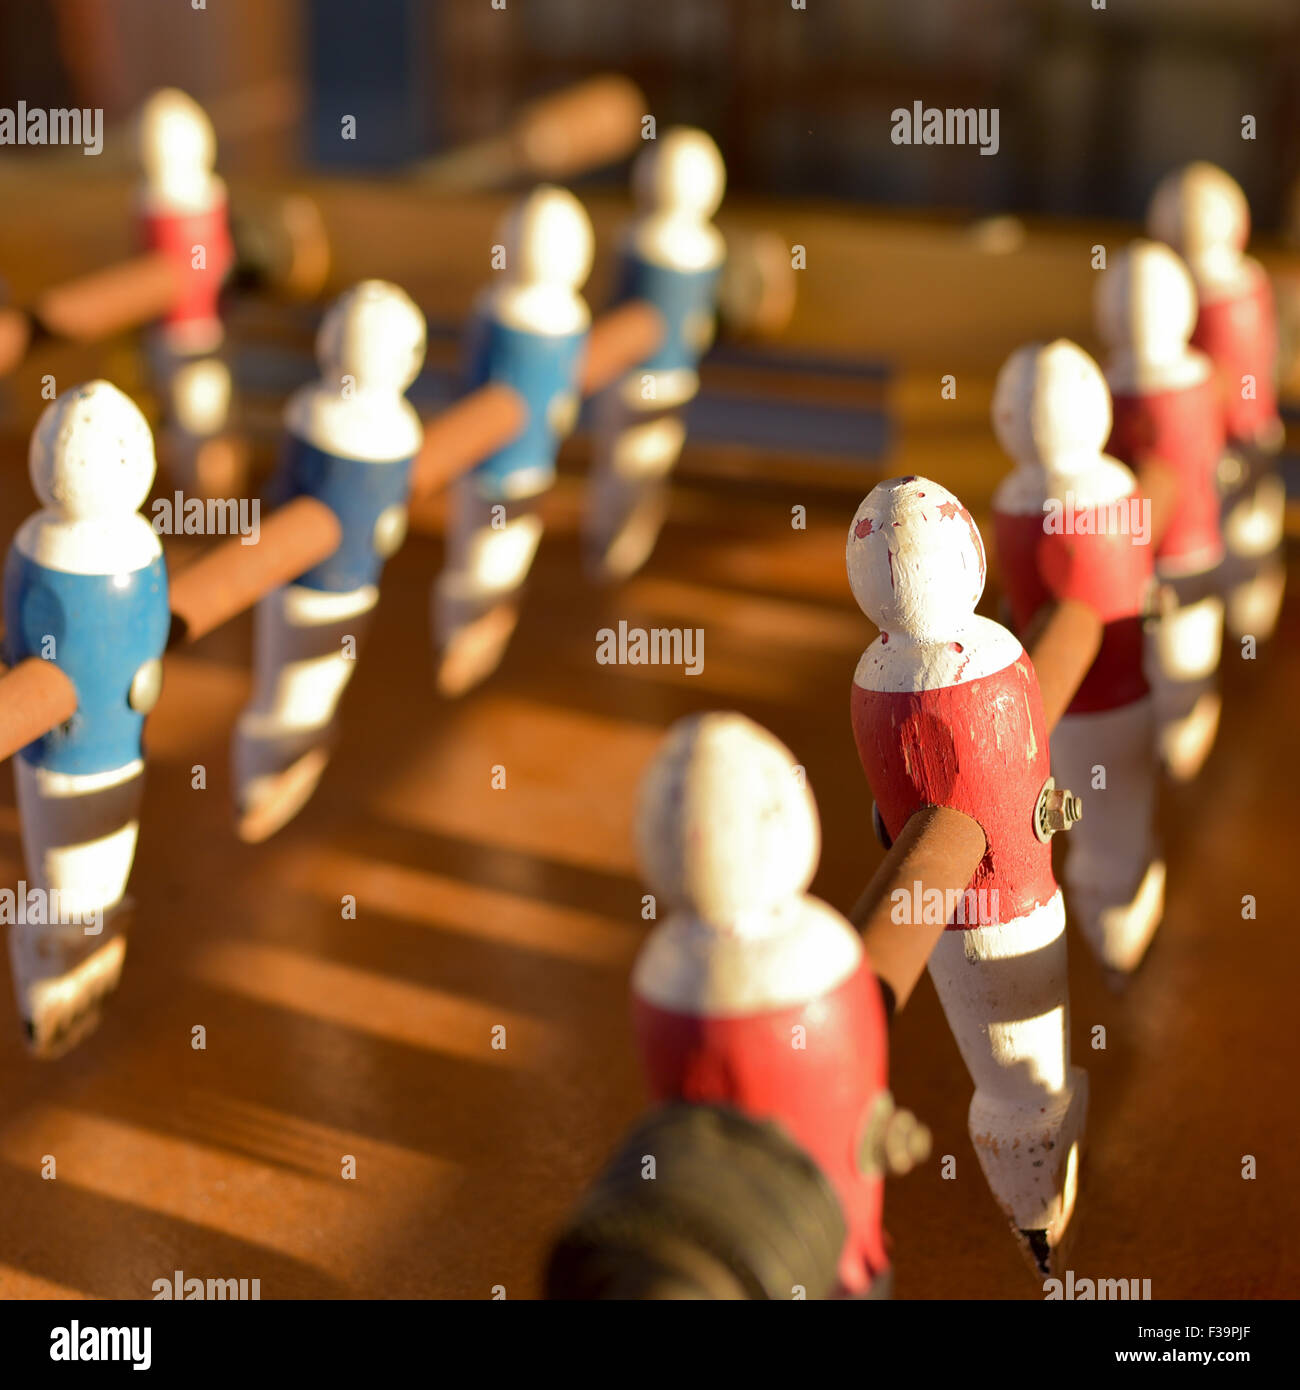 Wooden table football in a sunrise. Closeup. Greece. - Stock Image